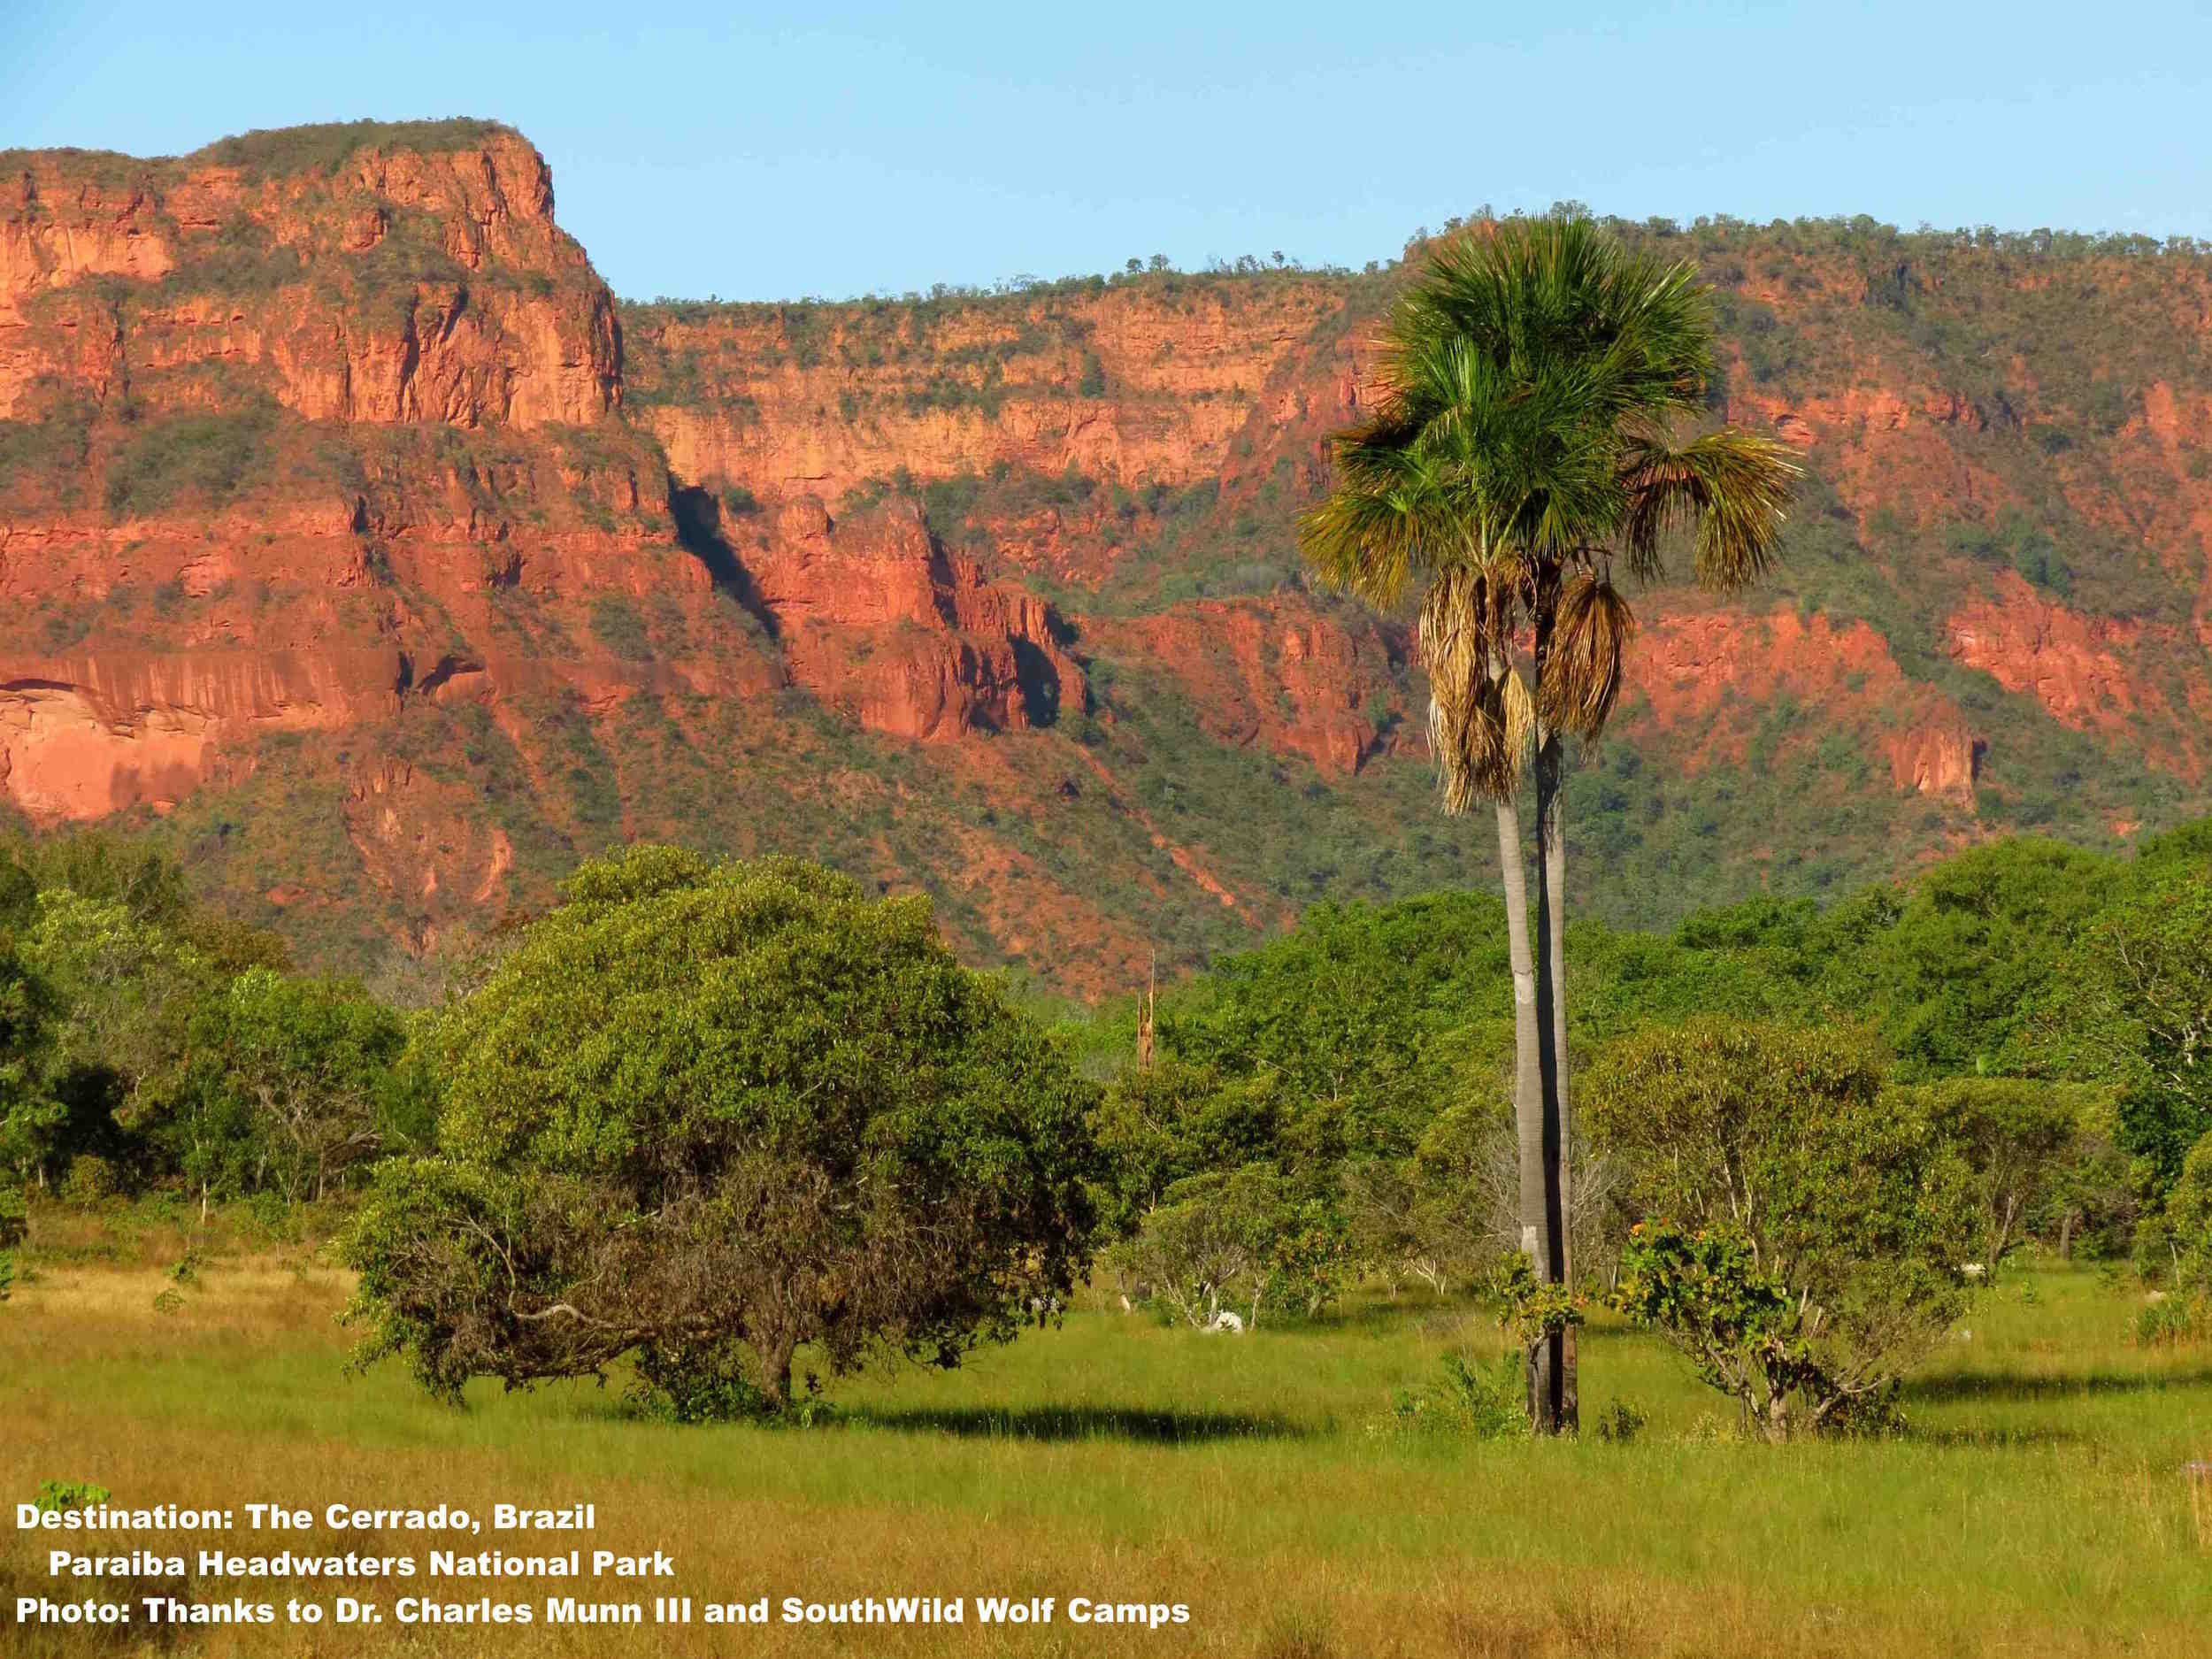 Brazil's Cerrado is one of the most bio-diverse regions on the planet - and disappearing faster than the Amazon rainforest. Photo: Thanks to Dr. Charles Munn III and SouthWild Wolf camps.